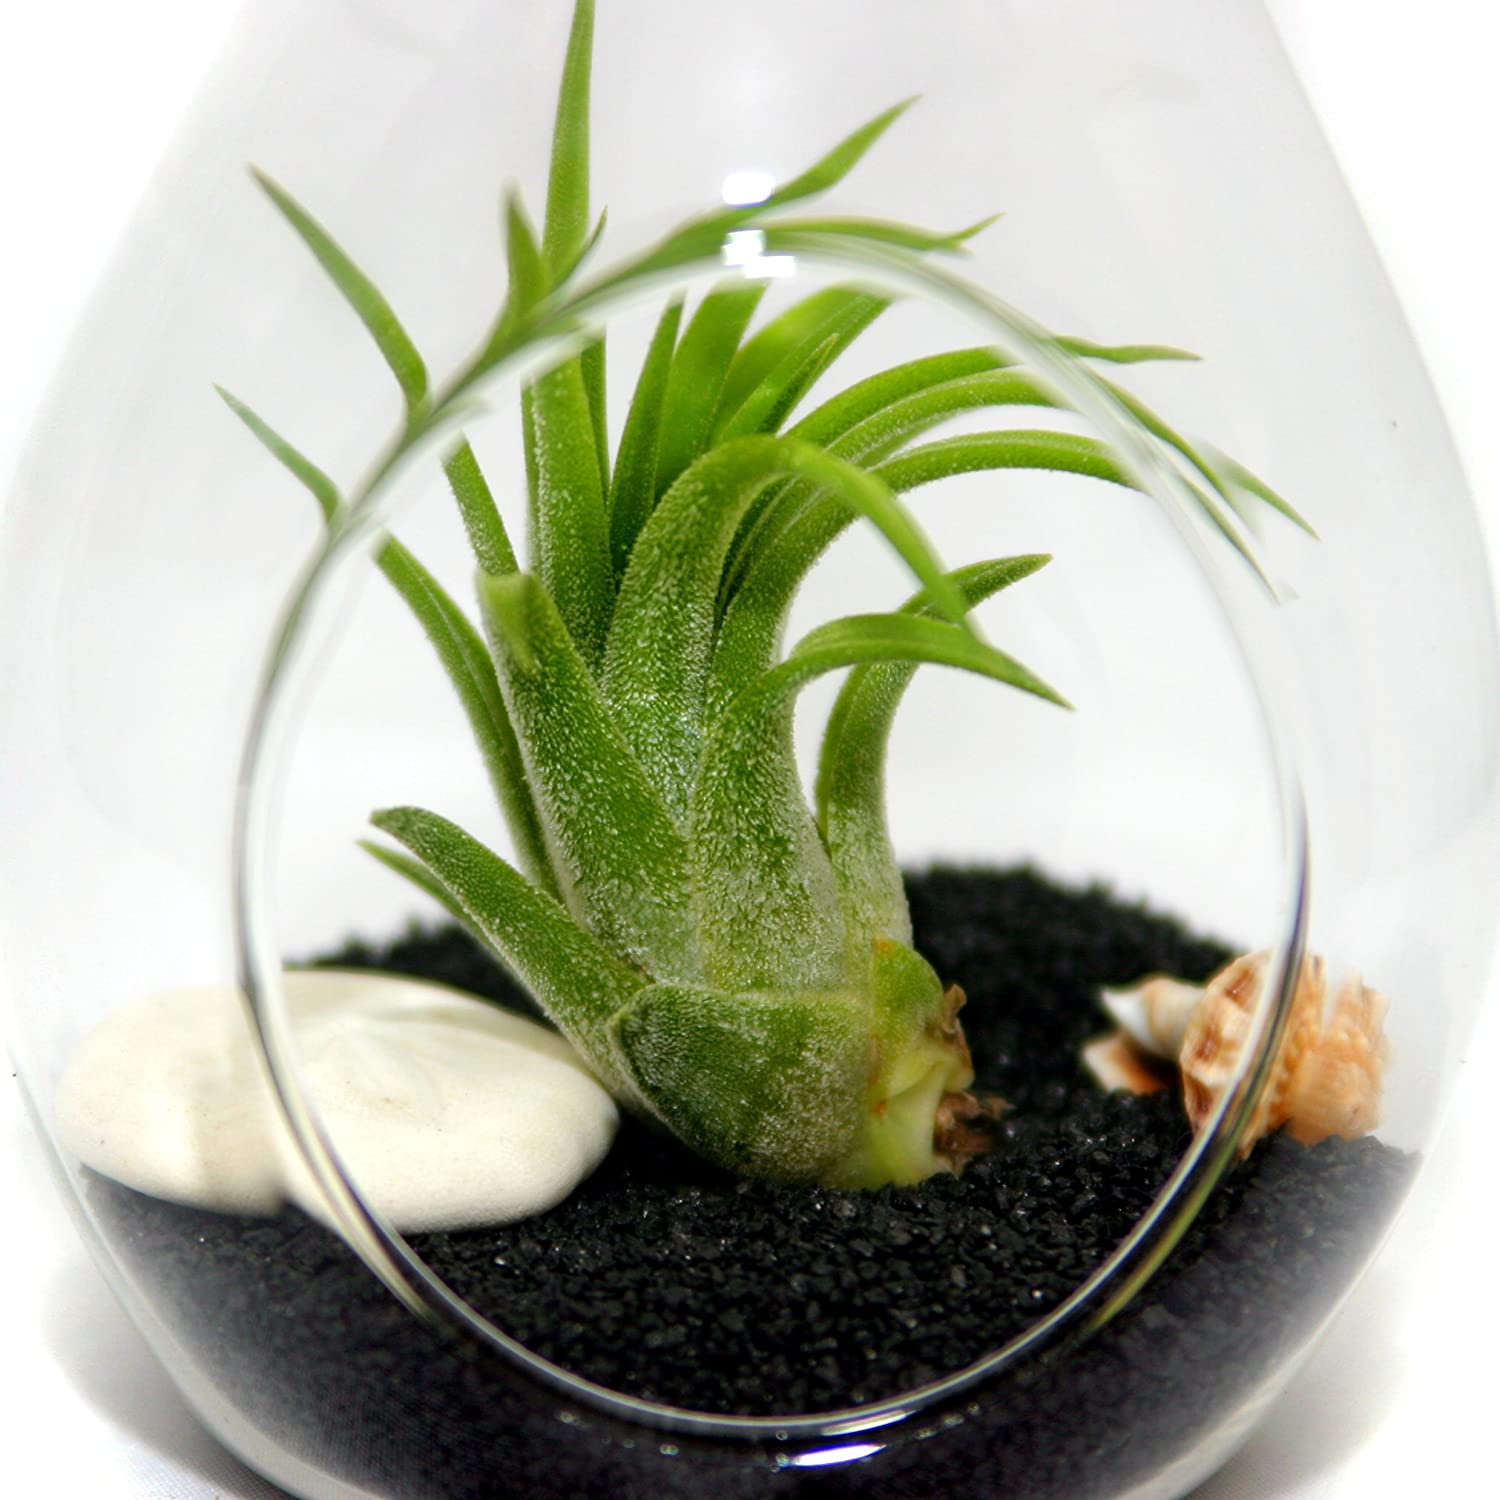 Air Plants Tillandsia Teardrop Beach Terrariums - 3 Complete Kits with sand, shells, sea biscuits, starfish, ionantha air plants